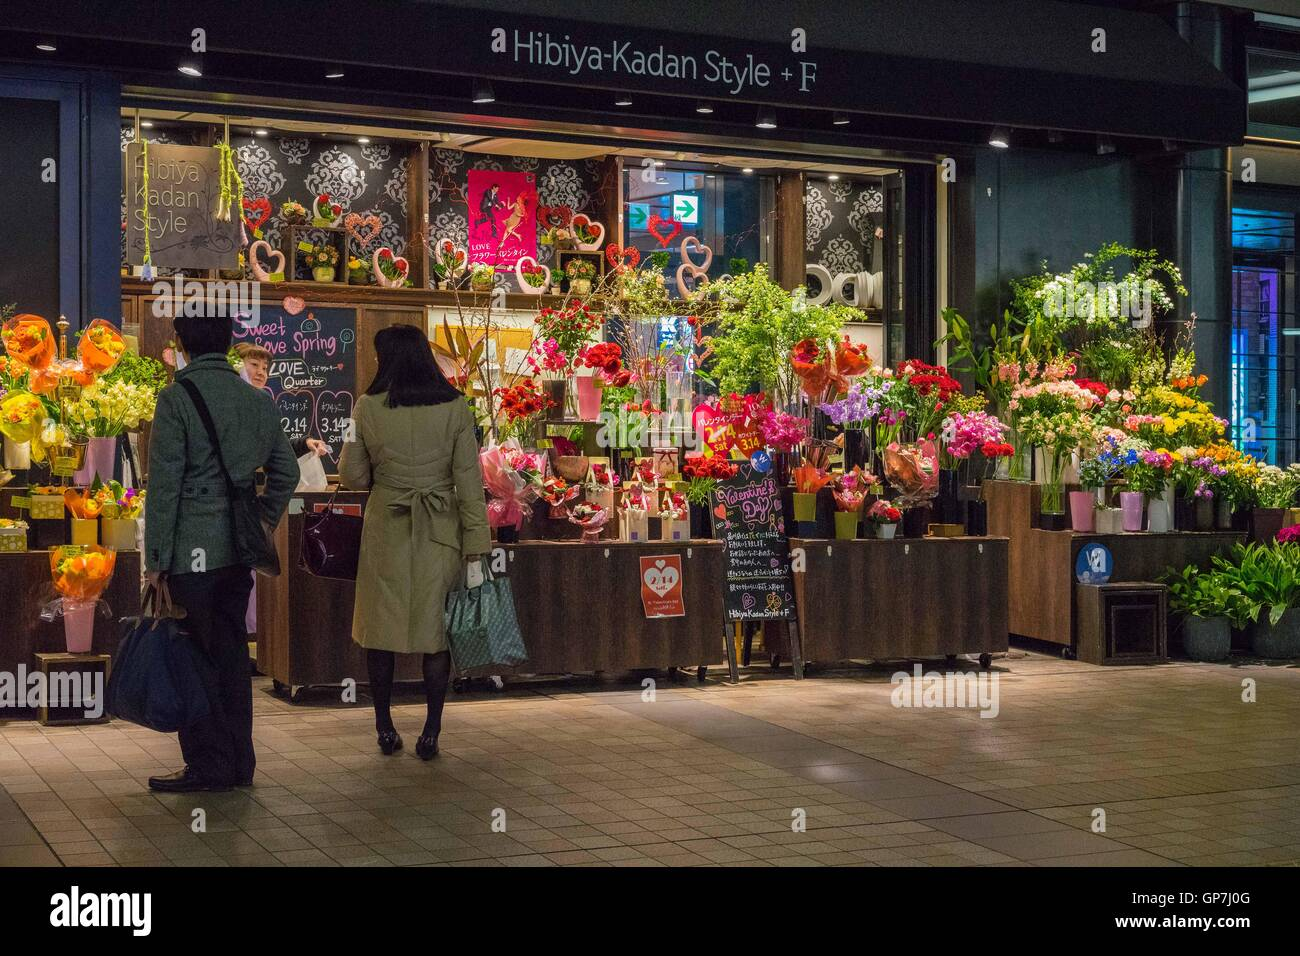 Railway Station Shop Immagini   Railway Station Shop Fotos Stock - Alamy 8ae06e2aed